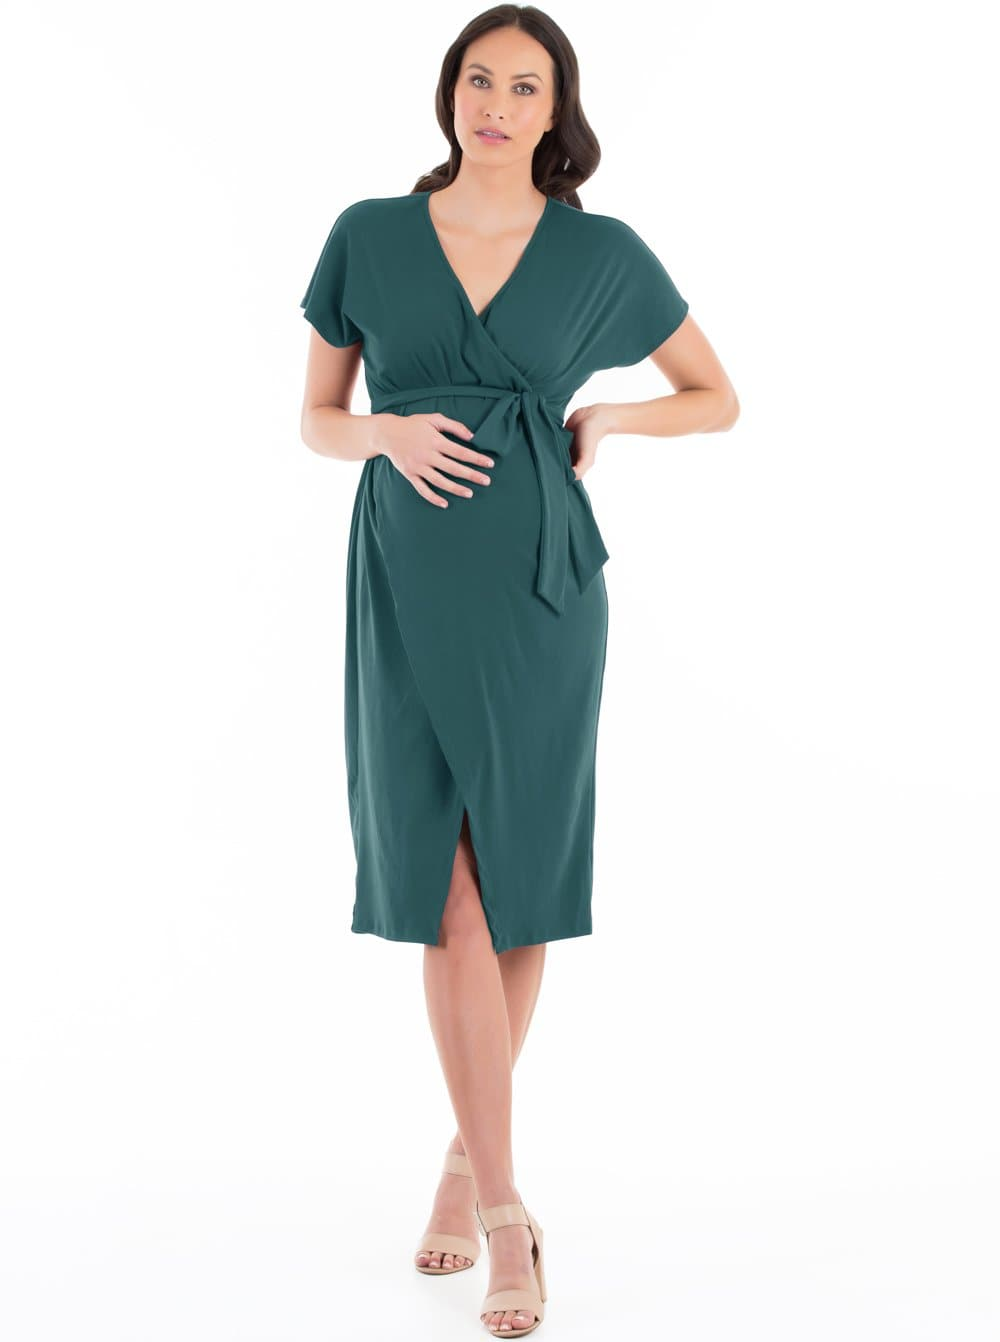 maternity dress in teal; nursing work dress